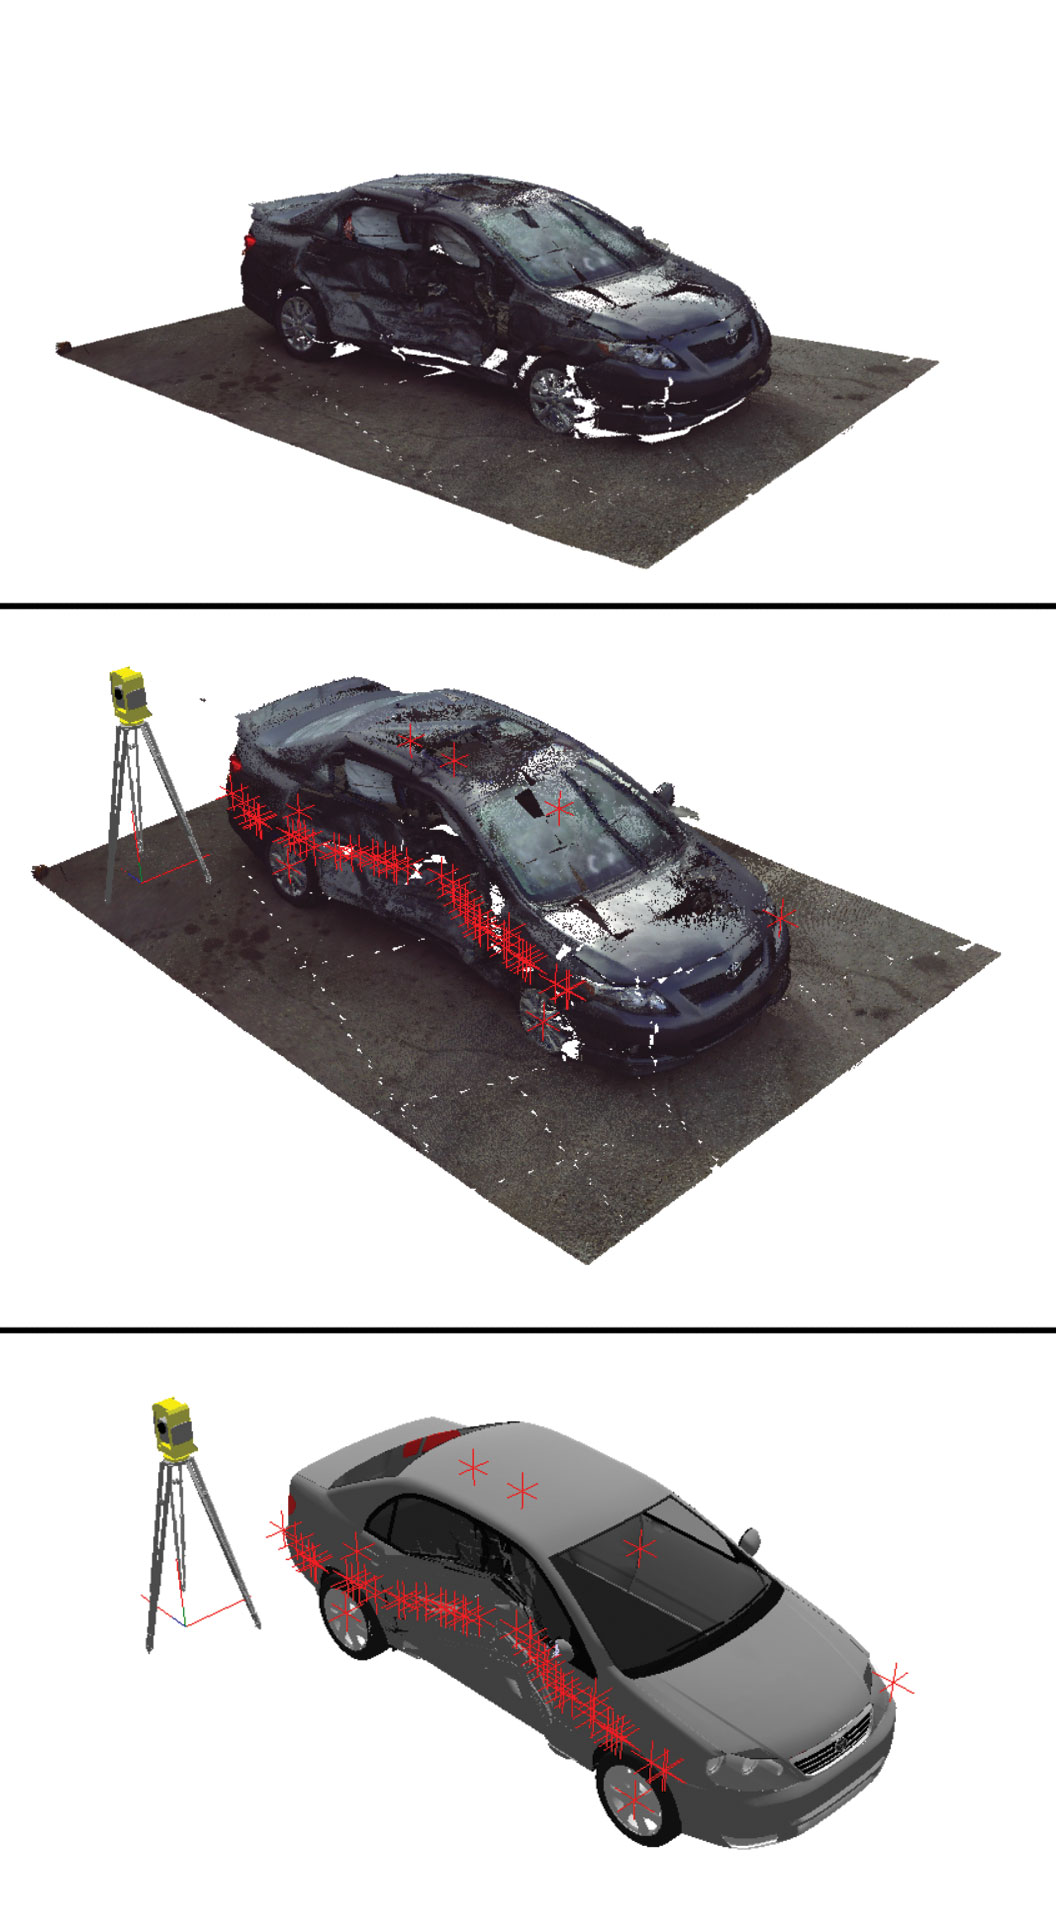 hight resolution of using photographs of an actual car accident a 3d digital reconstruction of the damaged vehicle